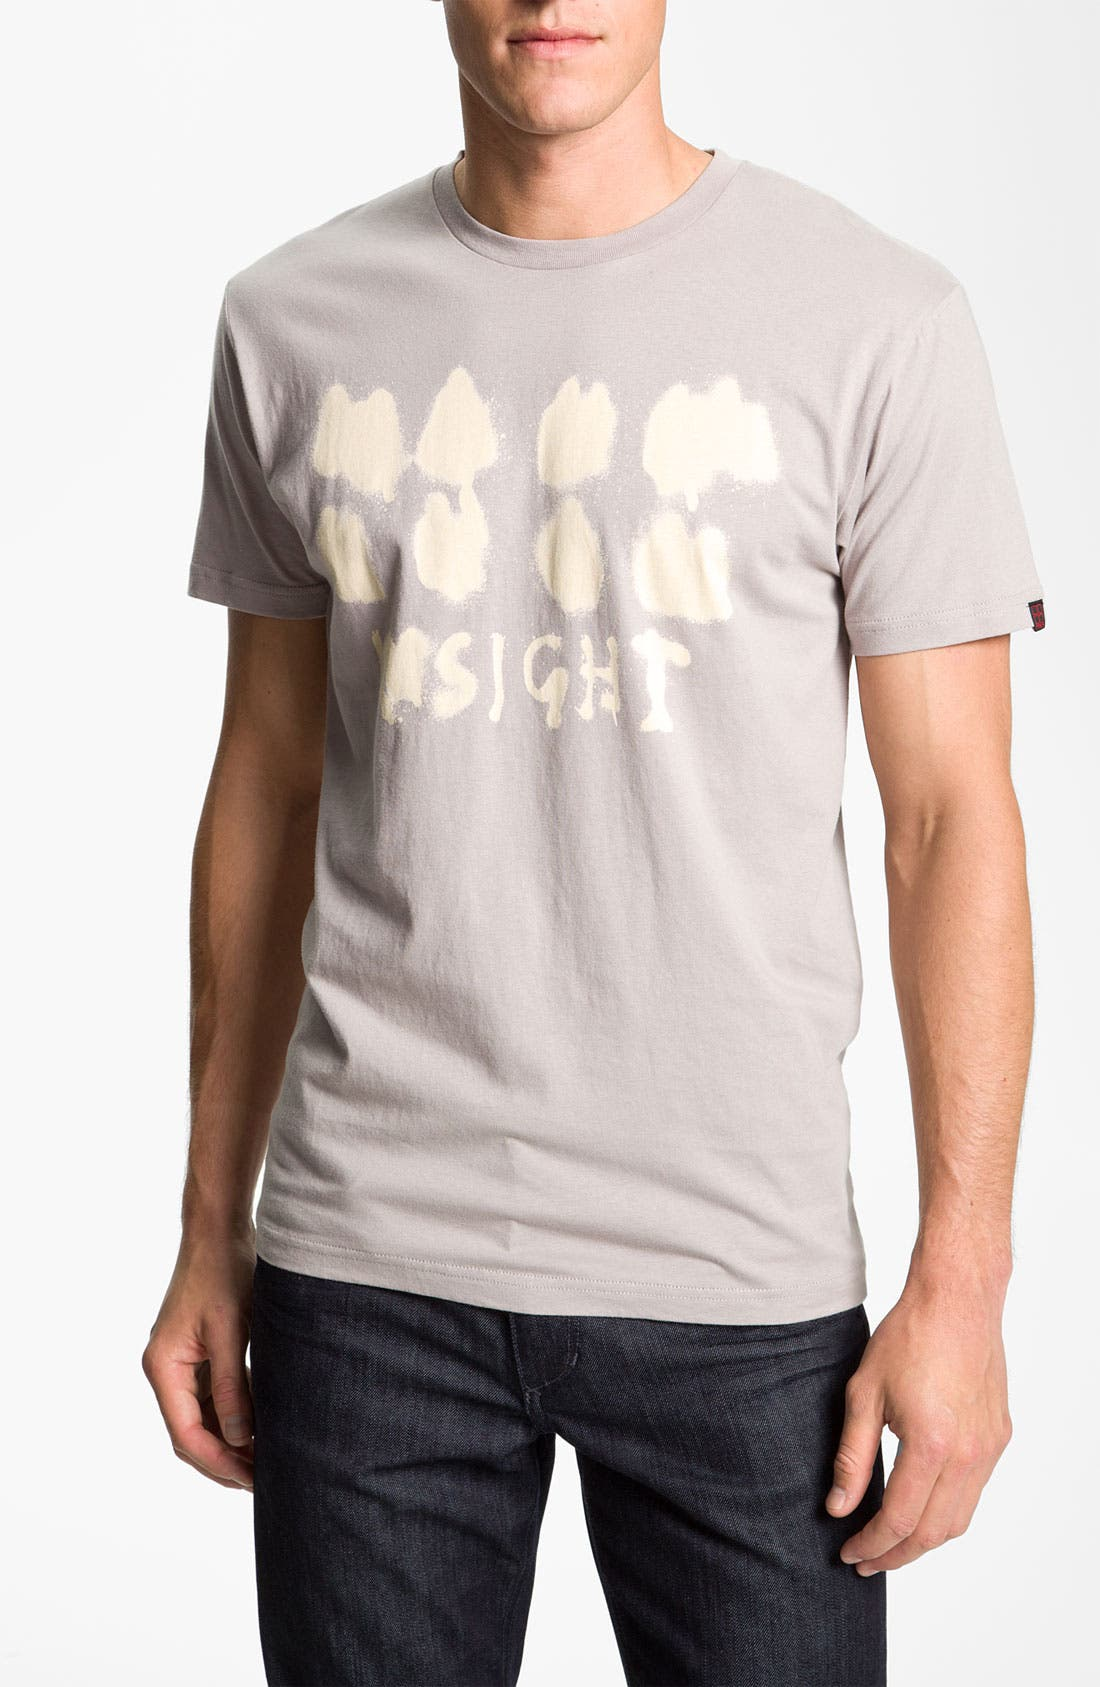 Main Image - Insight 'Delinquent Domestic' Graphic T-Shirt